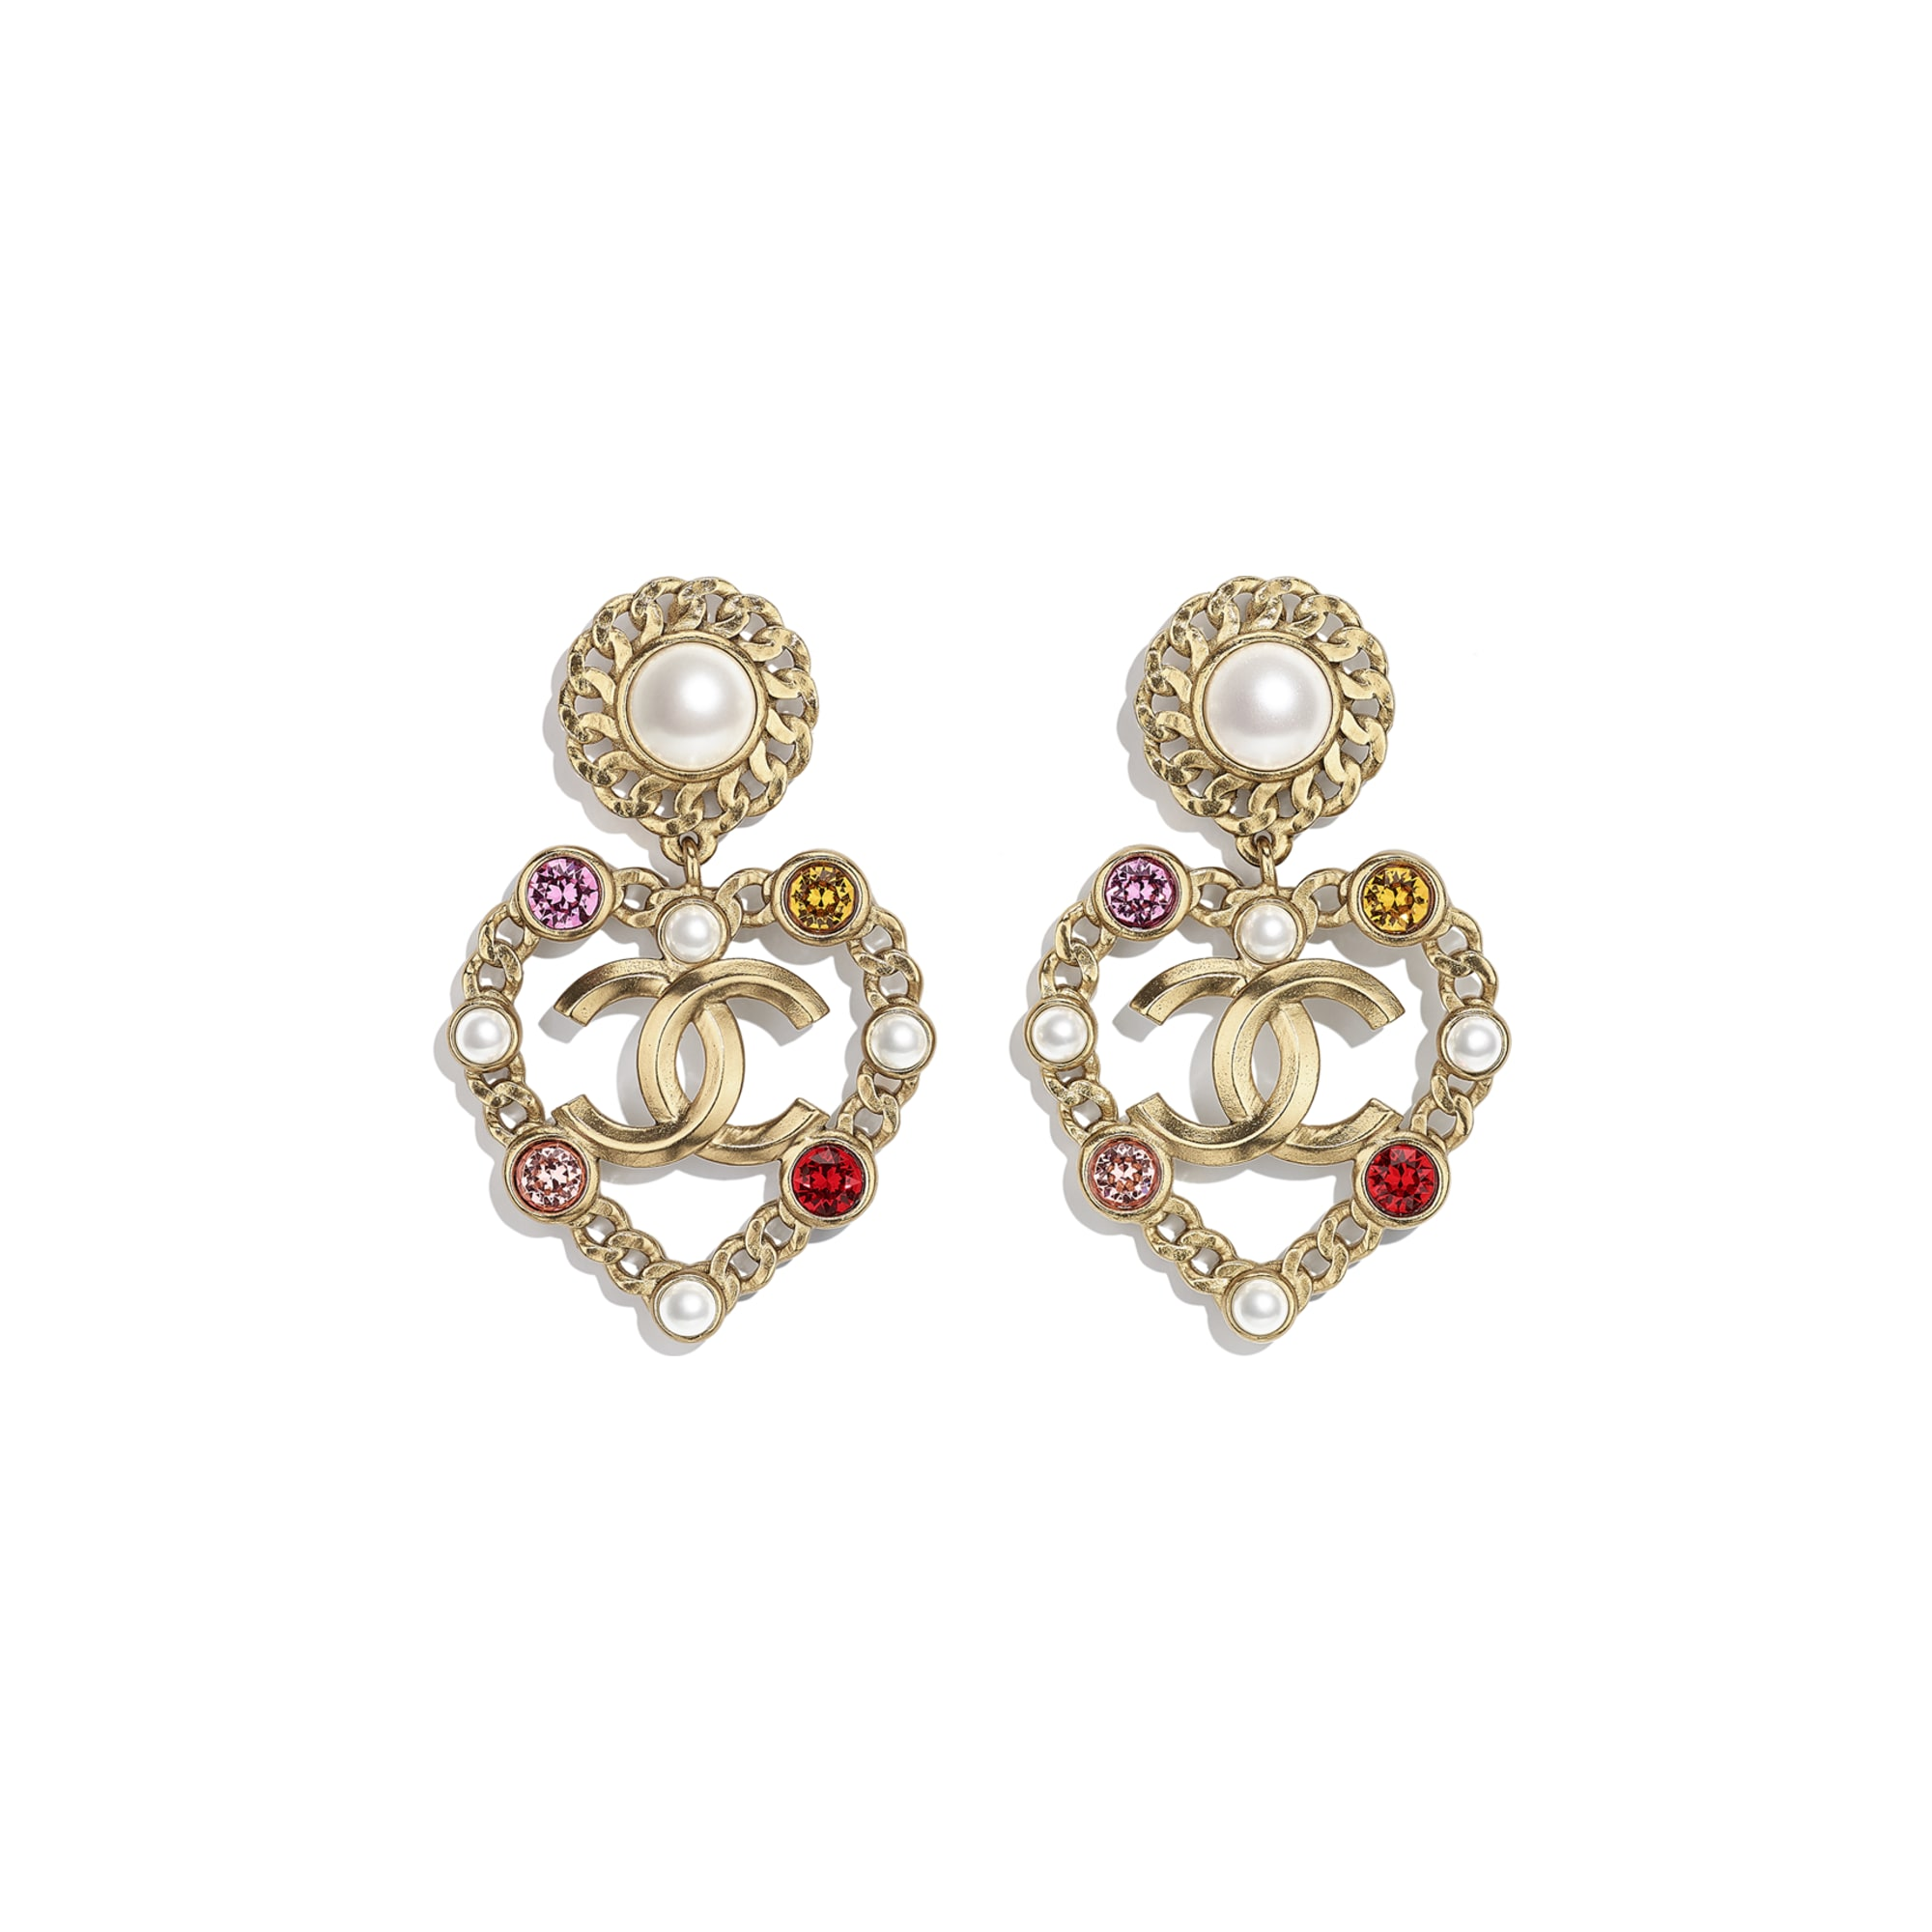 Earrings - Gold, Pearly White, Red, Pink & Yellow - Metal, Glass Pearls, Imitation Pearls & Diamanté - CHANEL - Default view - see standard sized version